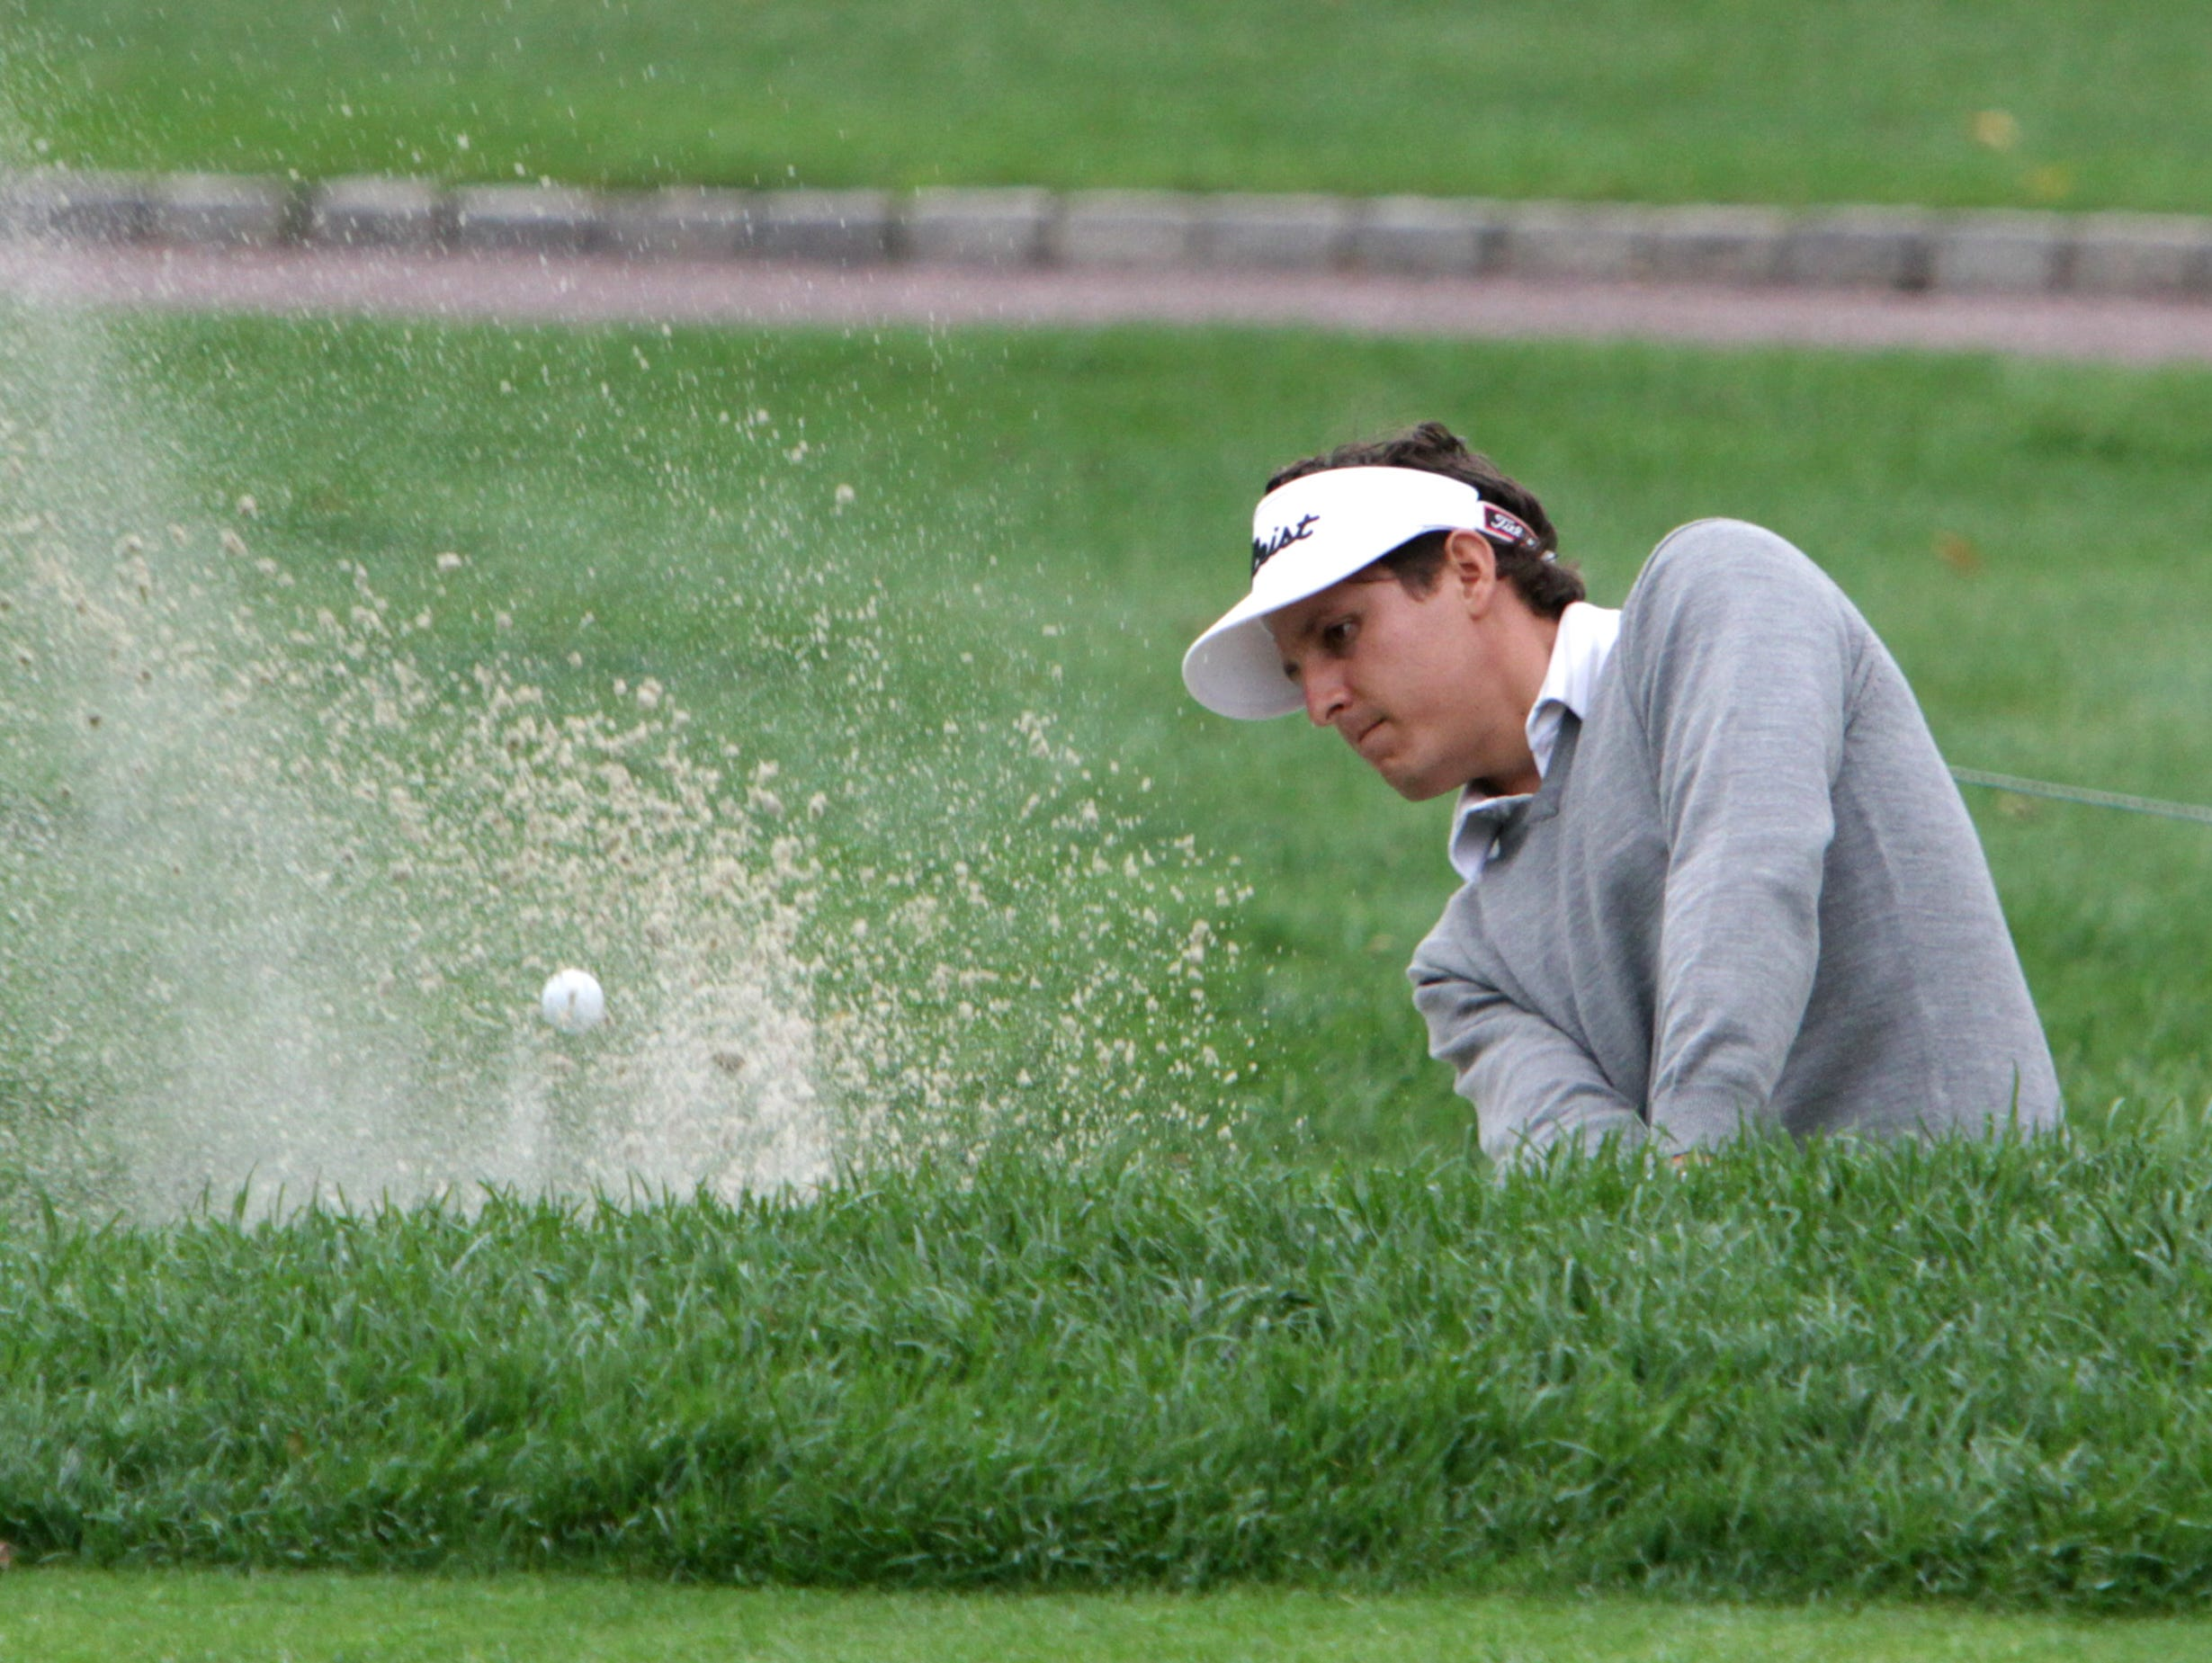 Tyler Jaramillo pumps shoots out of a bunker on the 18th in a play-off against Matt Dobyns in the final round of the Met PGA Championship at Fenway Golf Club Oct. 1, 2015. Dobyns won.